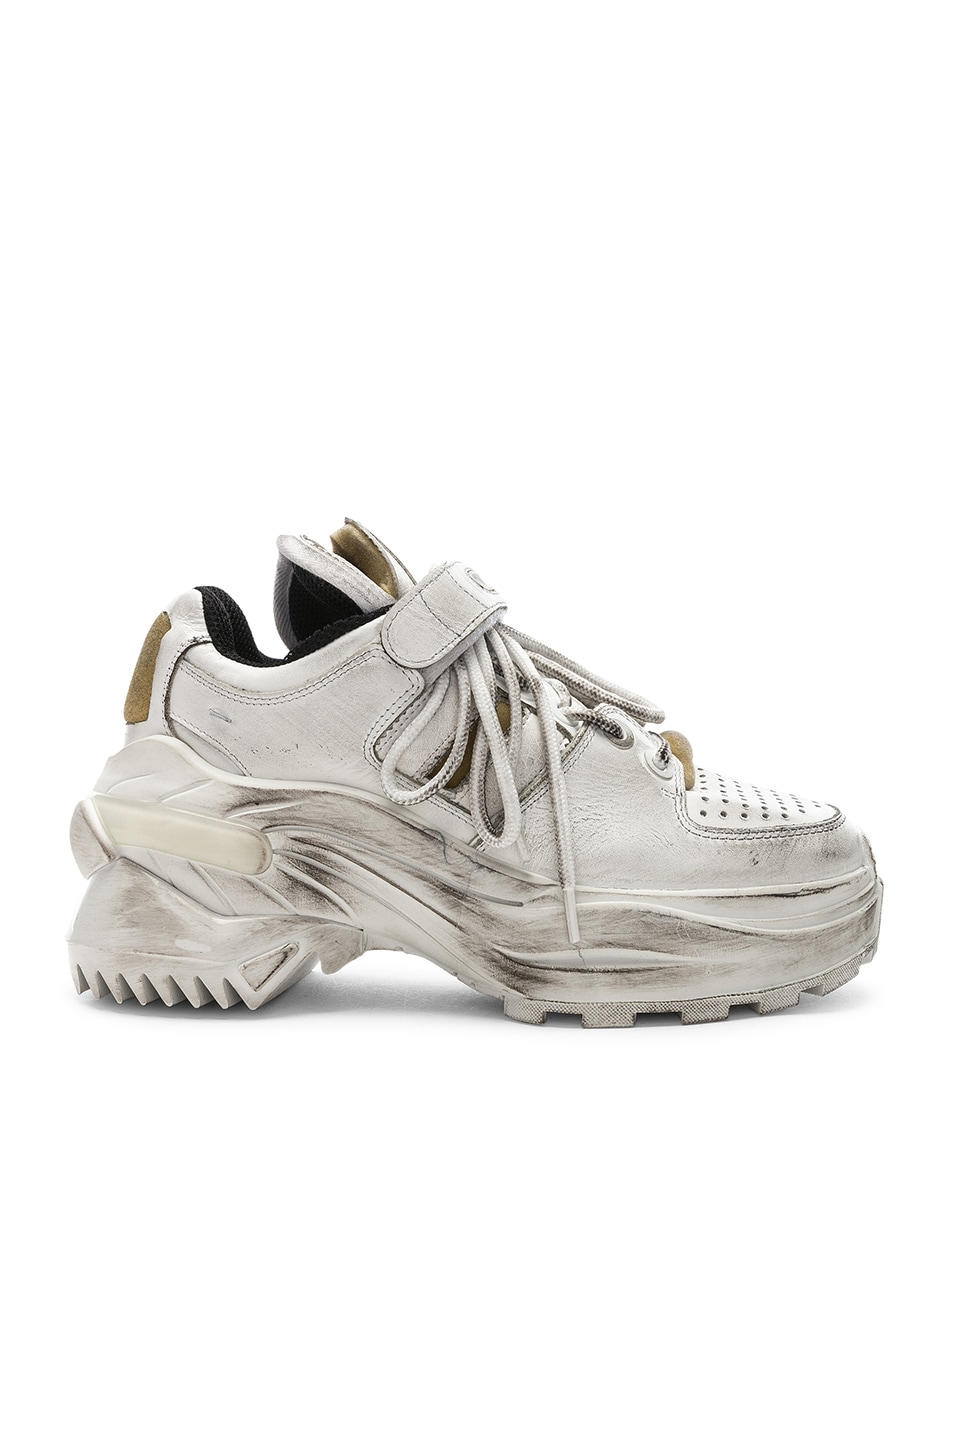 Image 1 of Maison Margiela Leather Sneakers in White & Black Raven